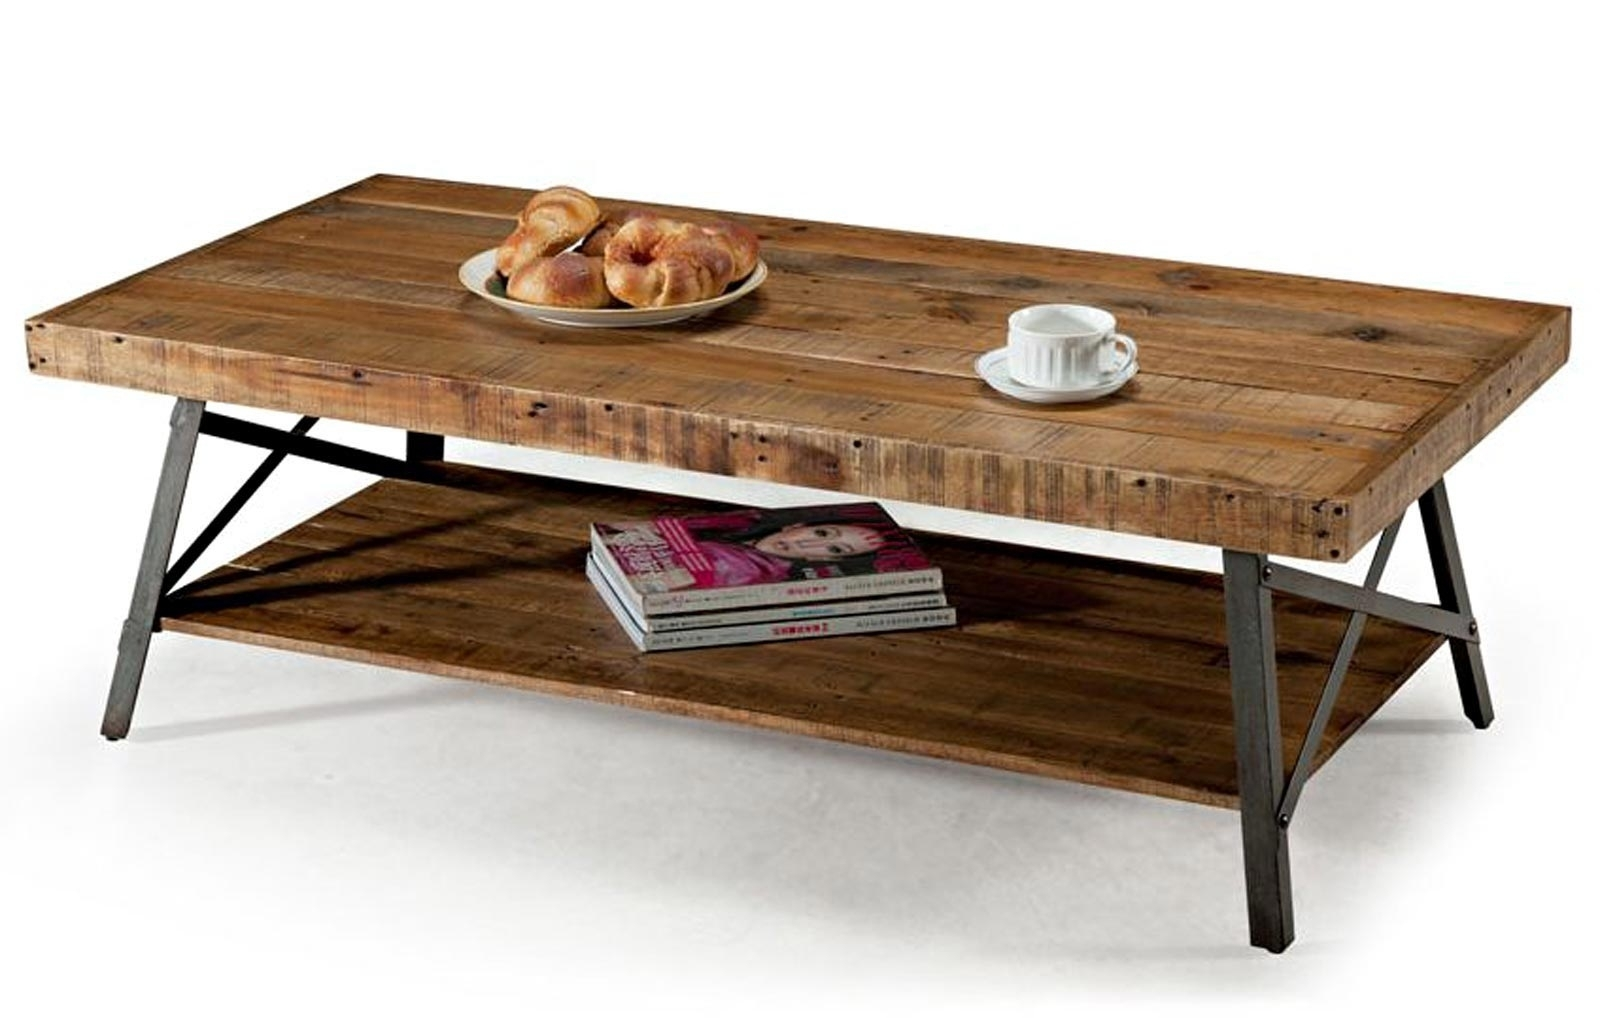 Prepossessing Modern Rustic Coffee Table Laundry Room Concept In for Modern Marble Iron Coffee Tables (Image 25 of 30)